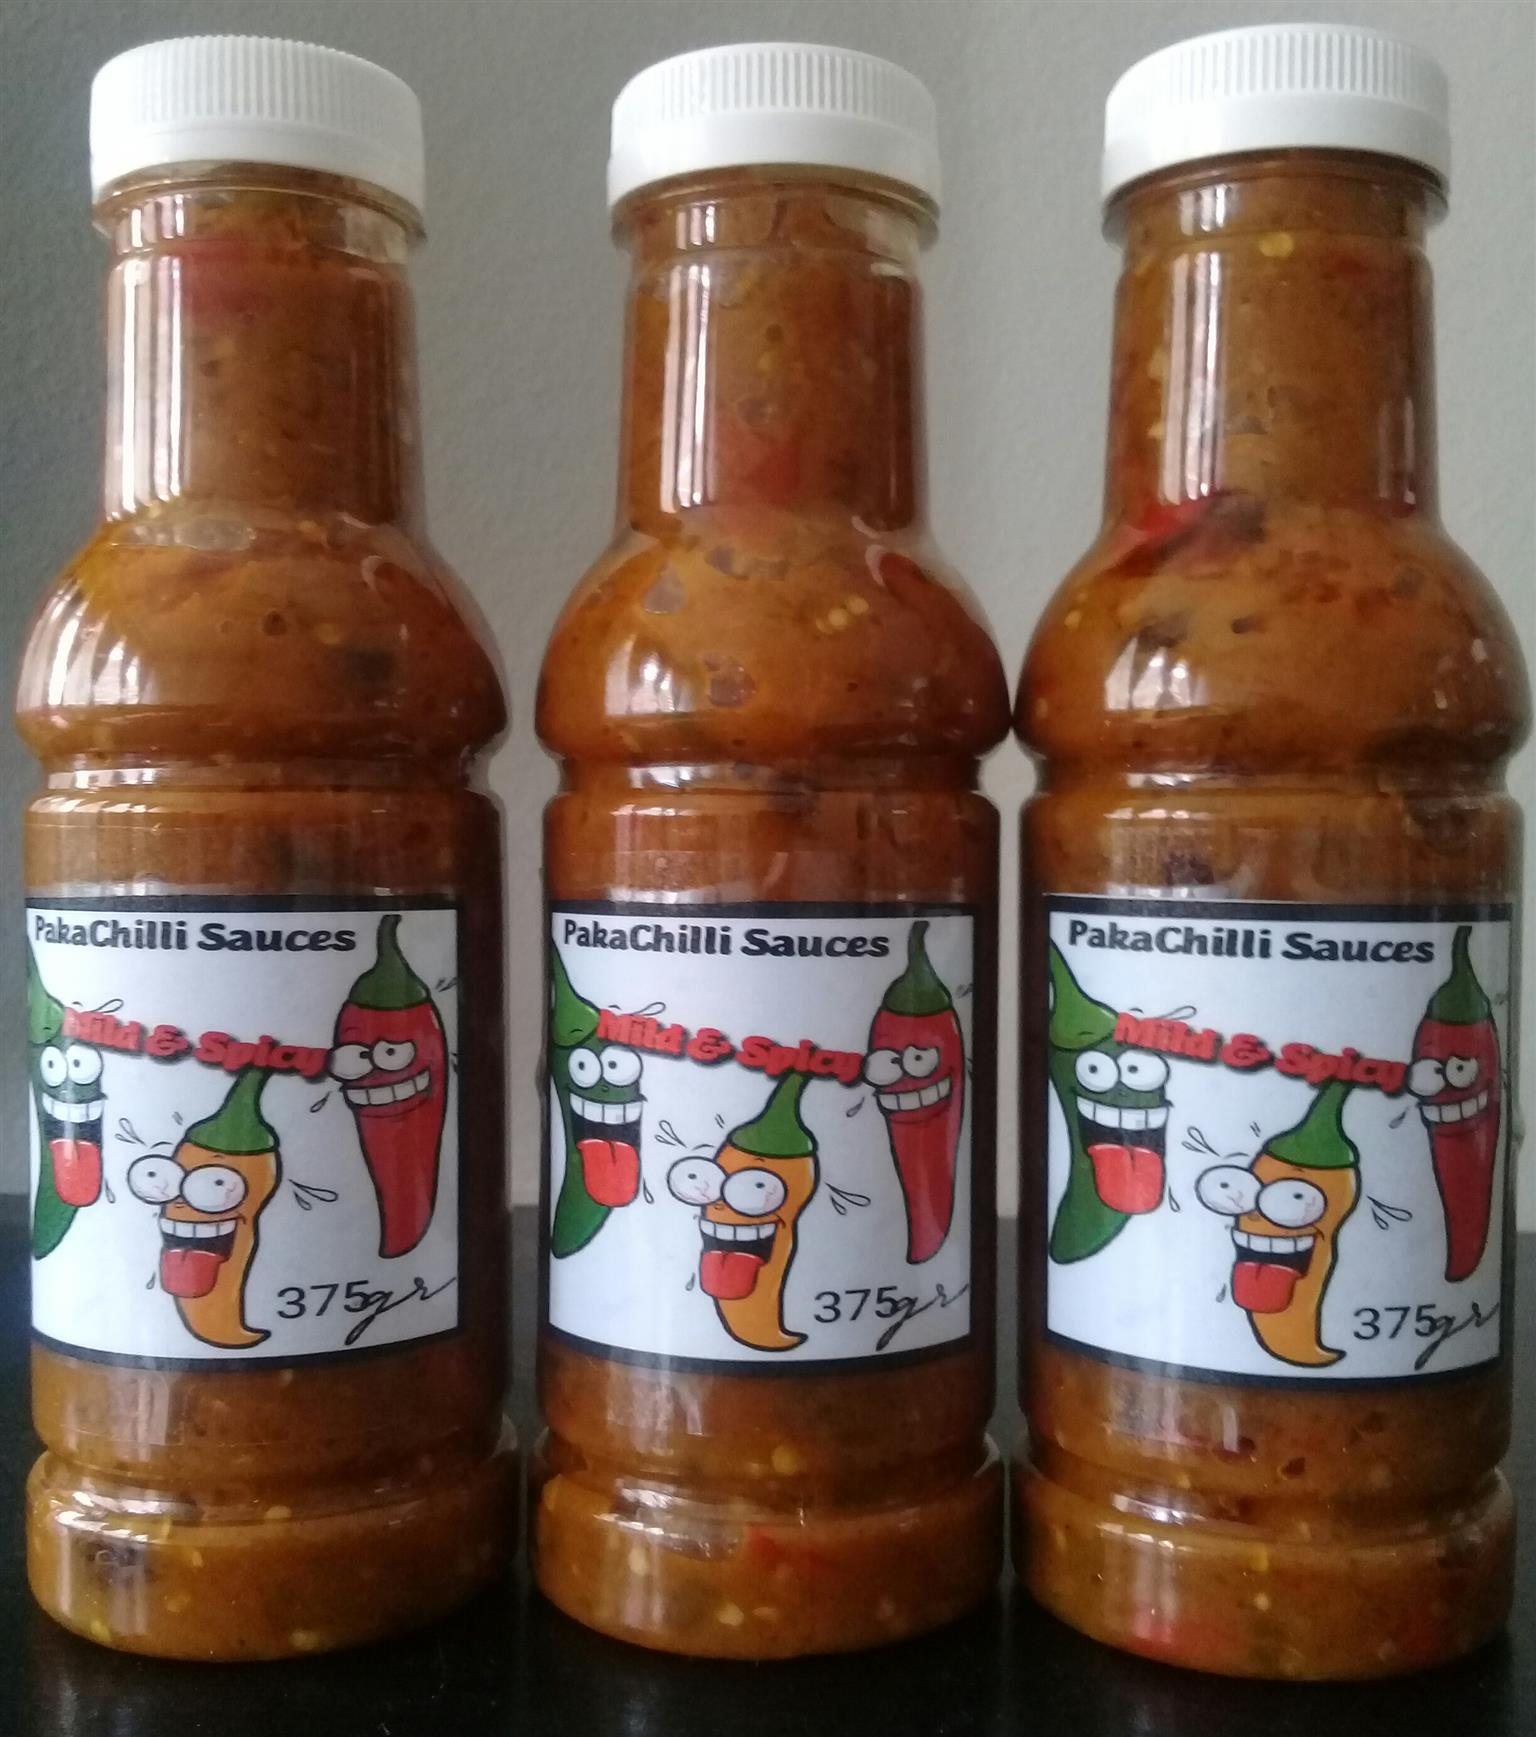 Make money while selling and enjoying our chili sauces